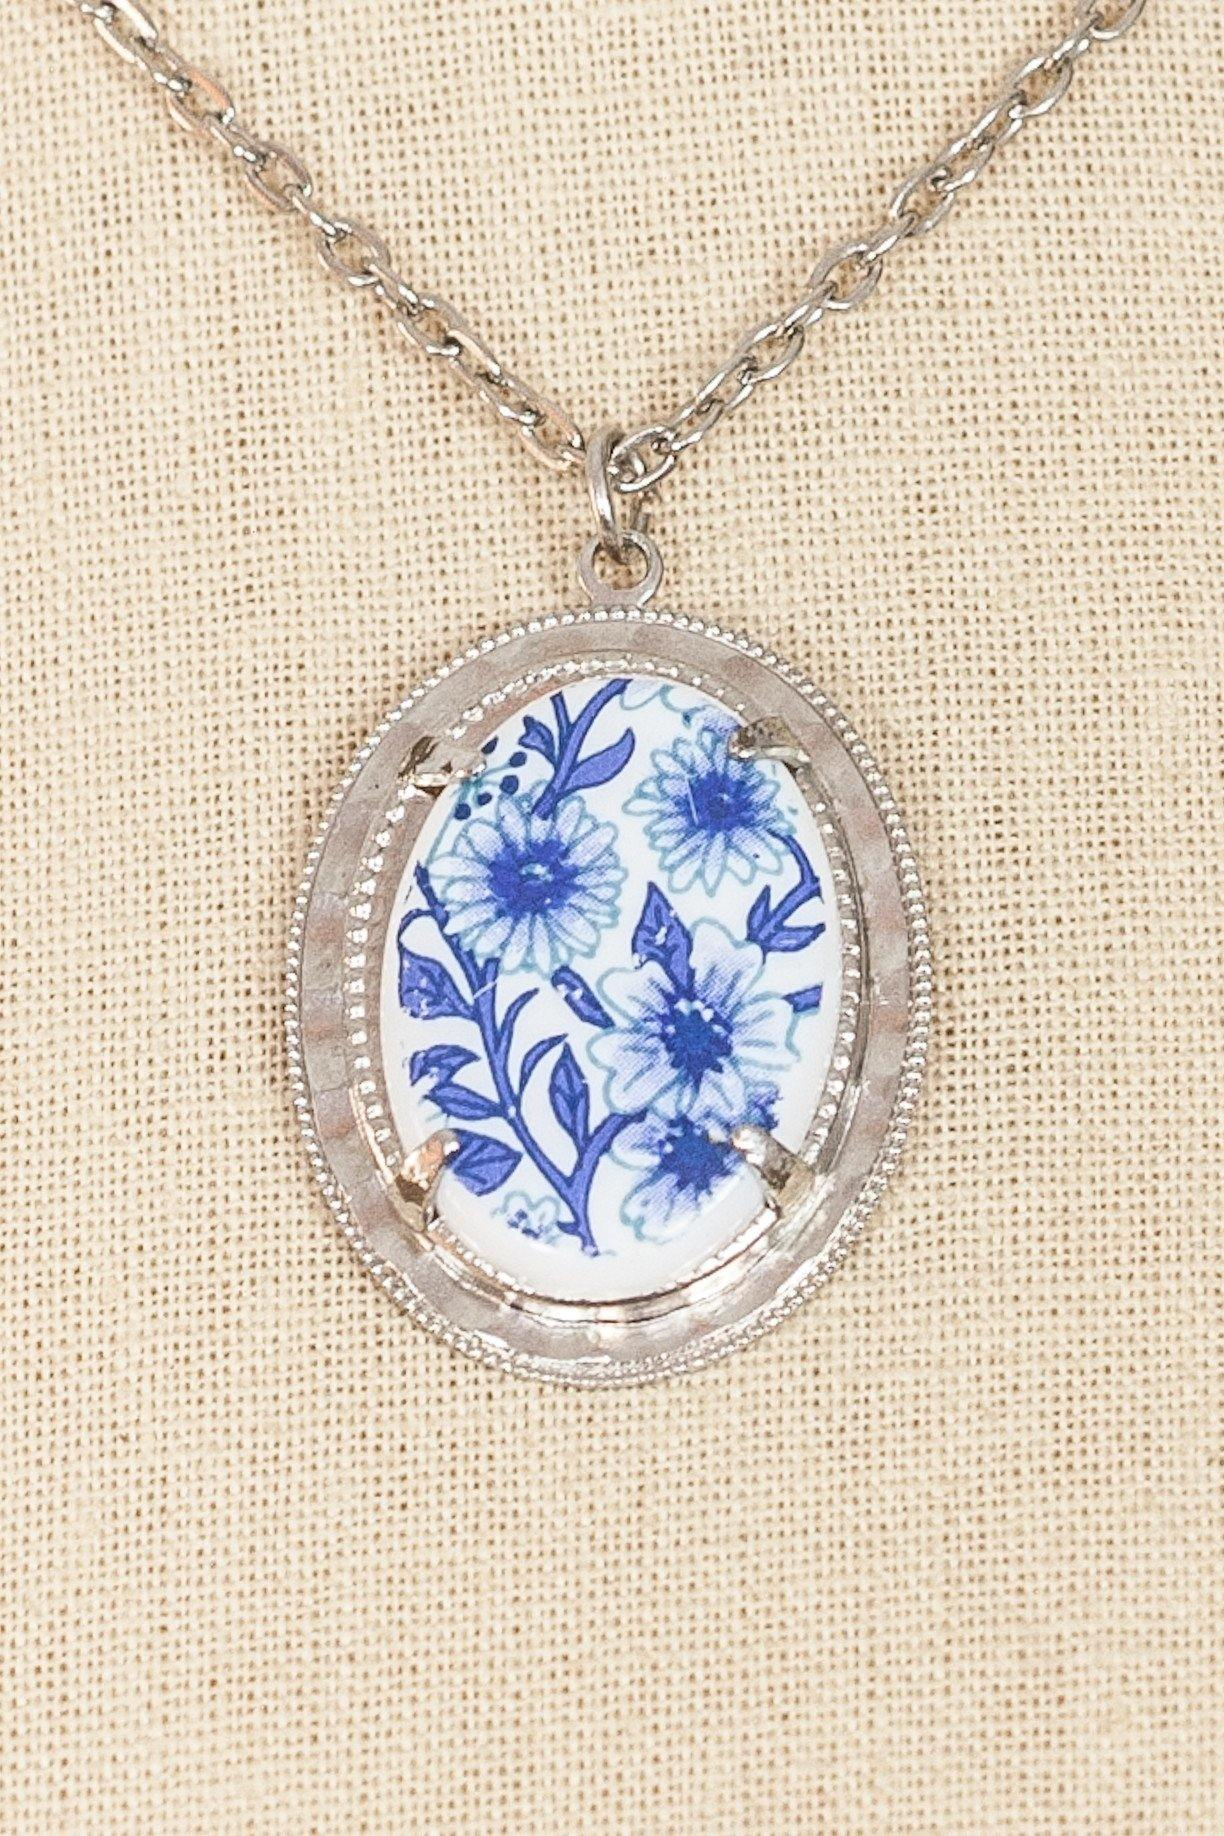 50's__Vintage__Blue Floral Pendant Necklace